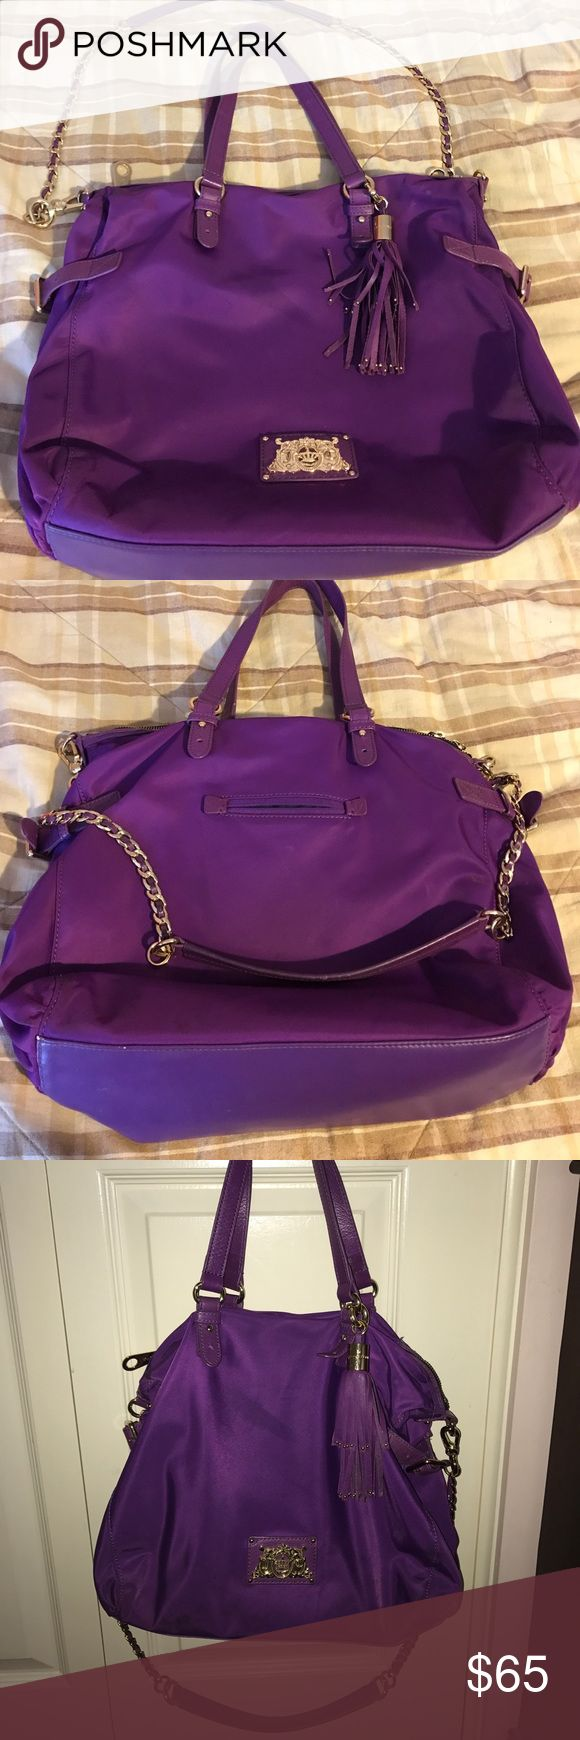 Juicy couture handbag Juicy couture handbag in good condition! Juicy Couture Bags Crossbody Bags